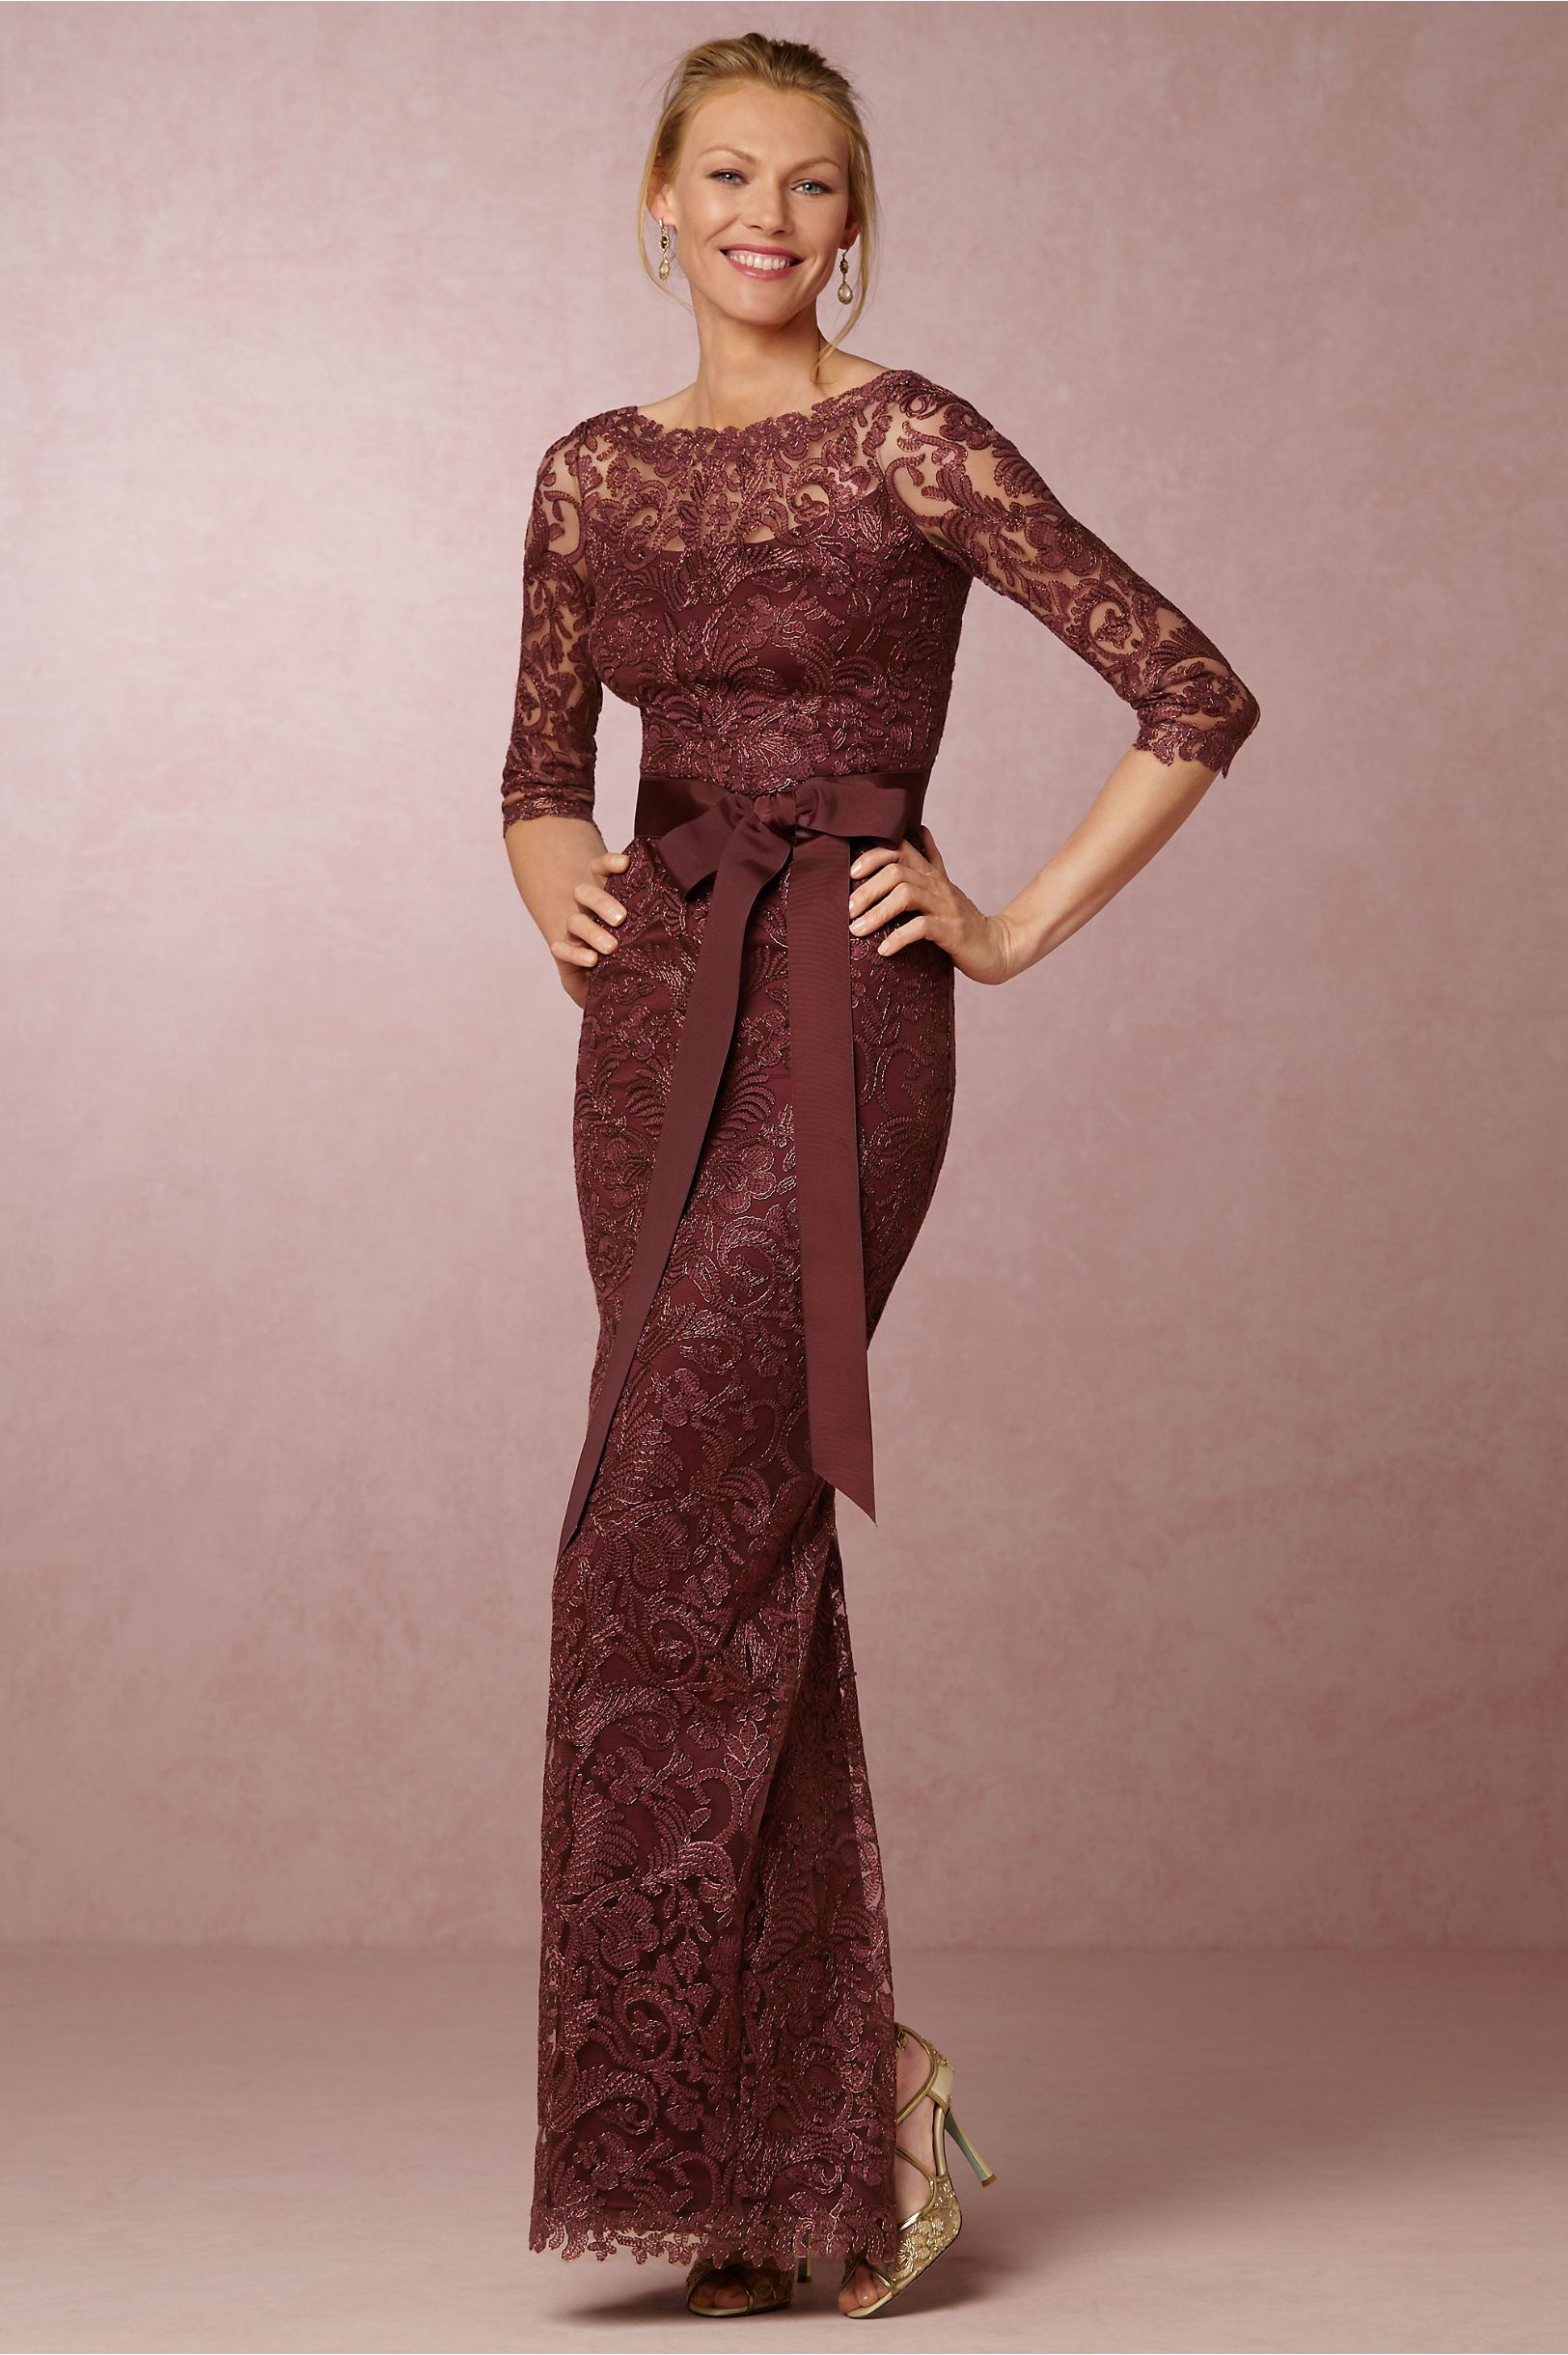 Wedding dress shops in deira dubai  Mother of the Bride  BHLDN Darby Dress in Dresses Mother of the